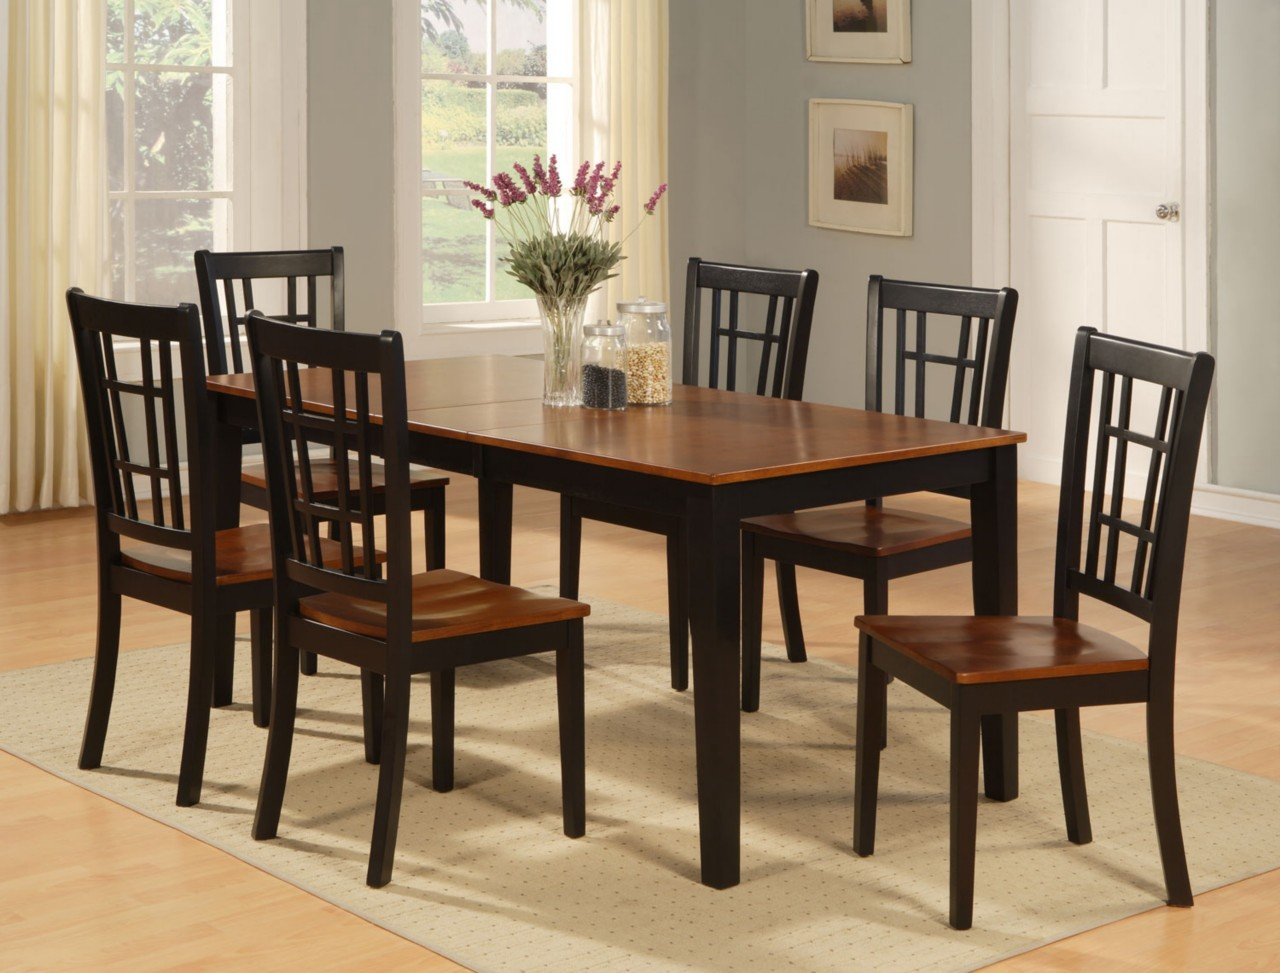 kitchen table and chair stool photo dinette dining room set 7pc 6 chairs ebay